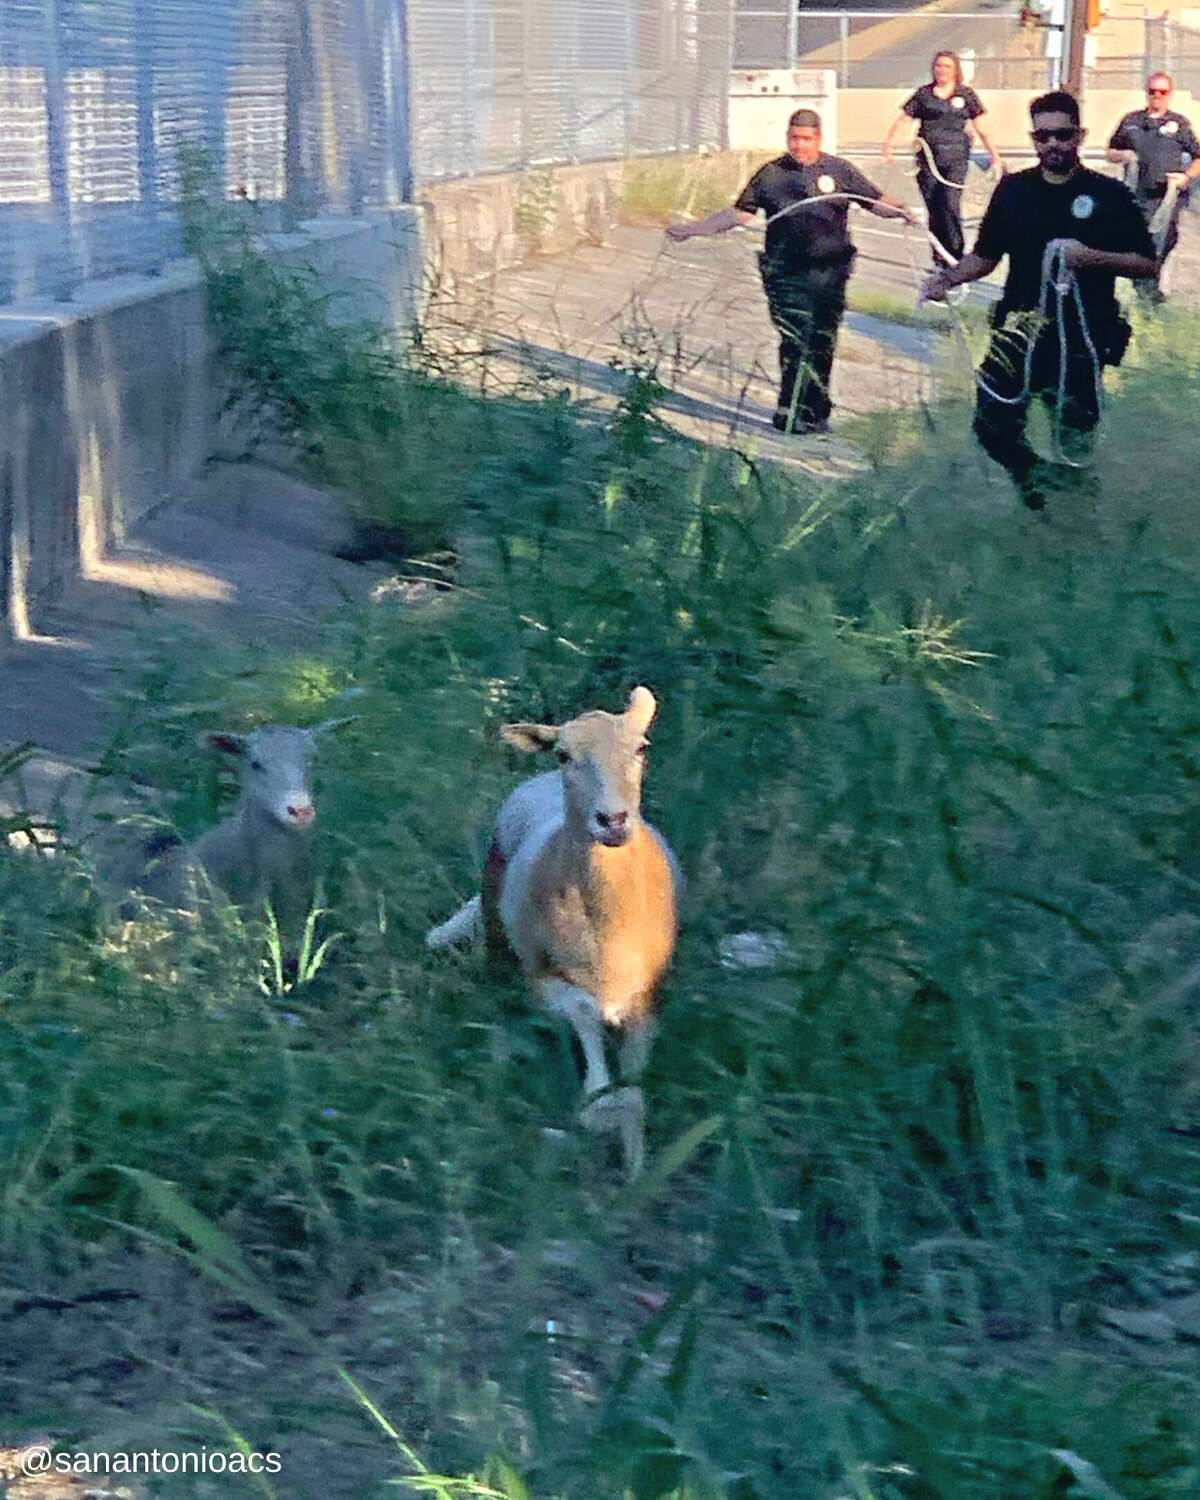 Police officers caught two sheep after chasing them near Texas 151 on the West Side earlier this year.